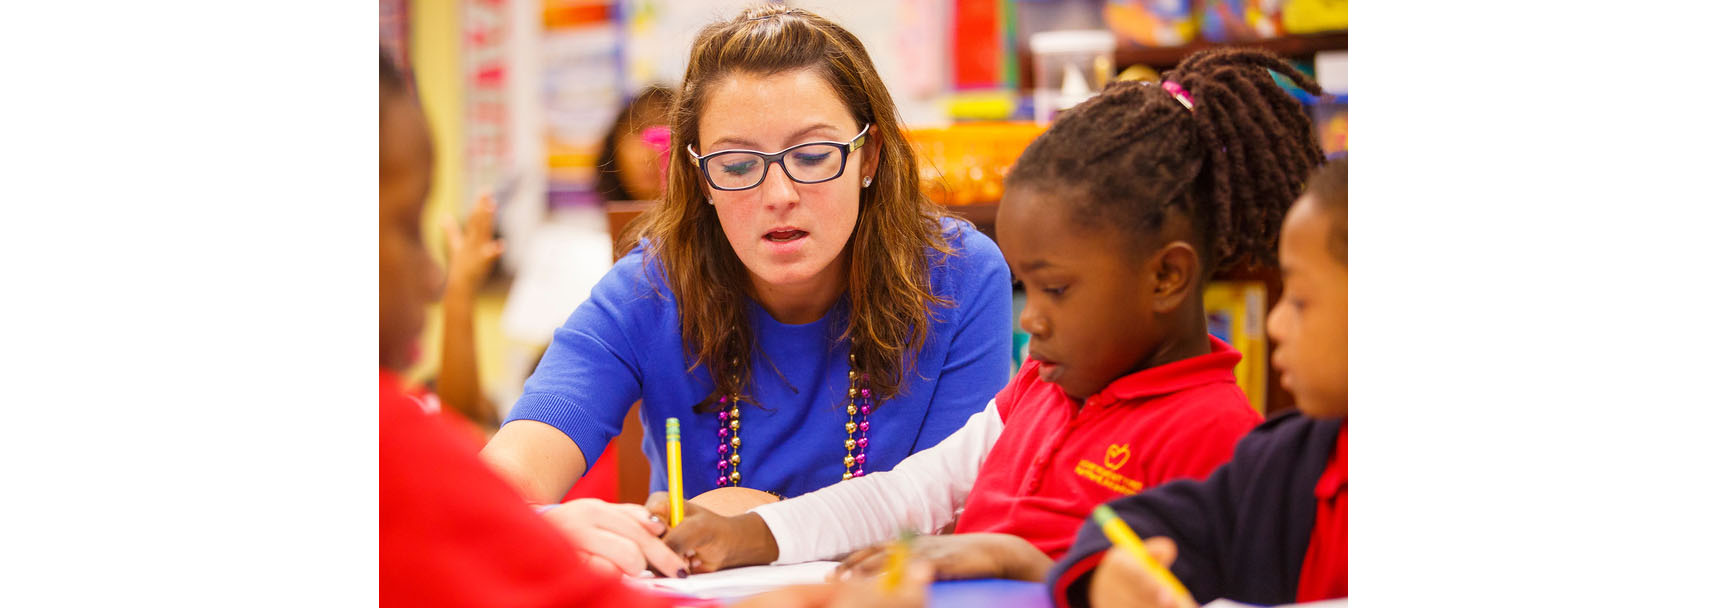 Public charter schools deserve equitable funding for continued success